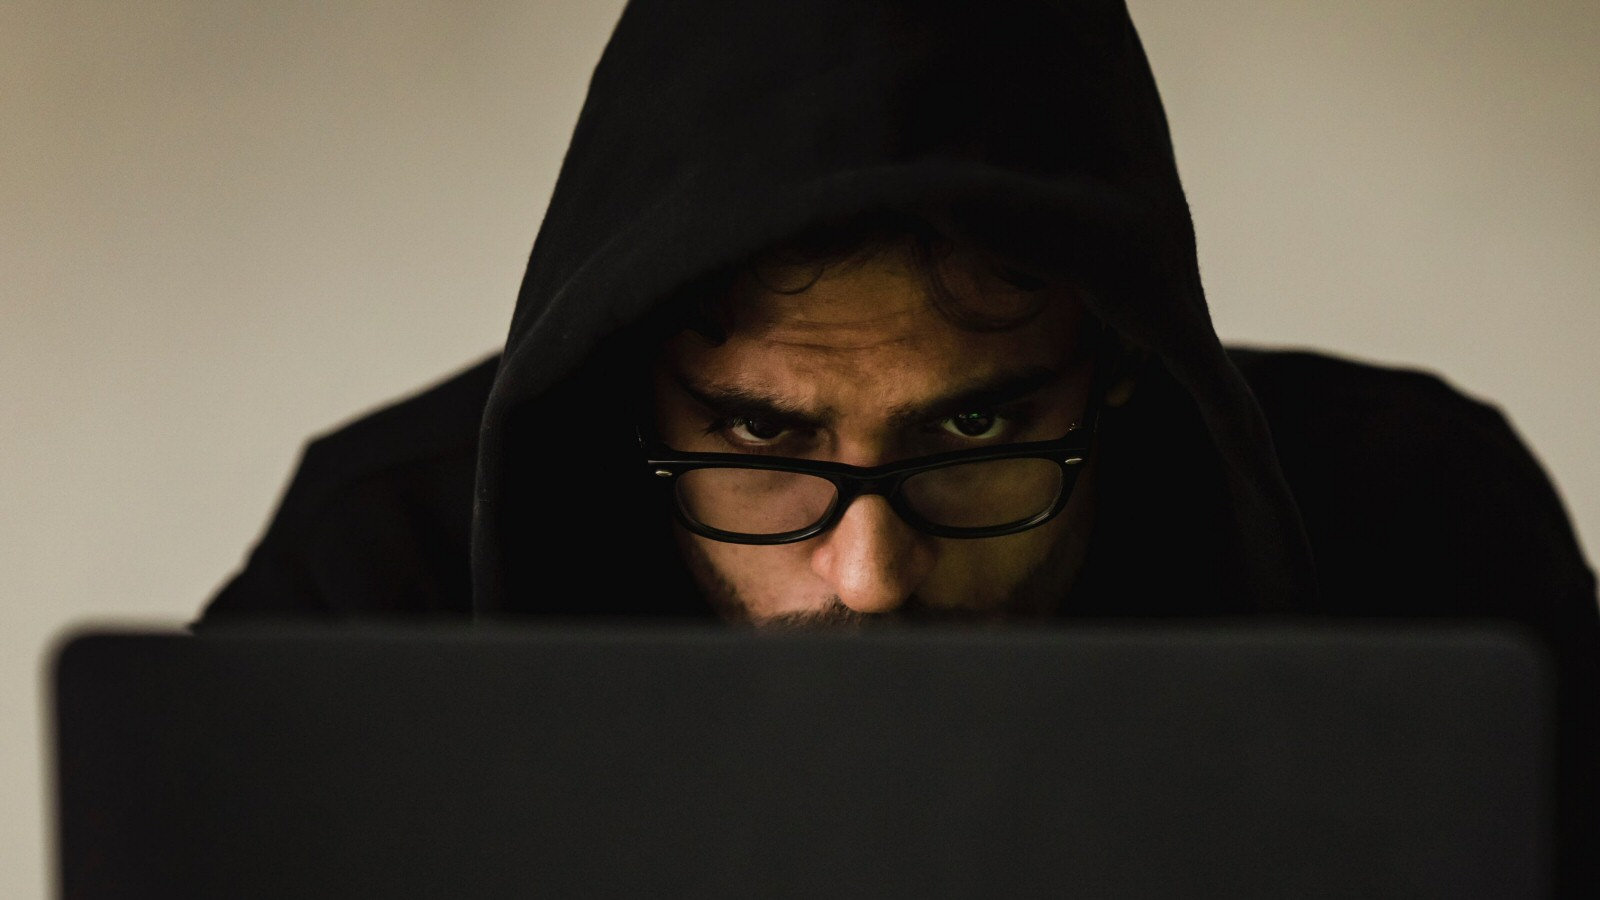 I can't stress enough how important it is to wear a black hoodie when you're hacking a computer. Without the hoodie, people won't realize how crafty and dangerous you are.